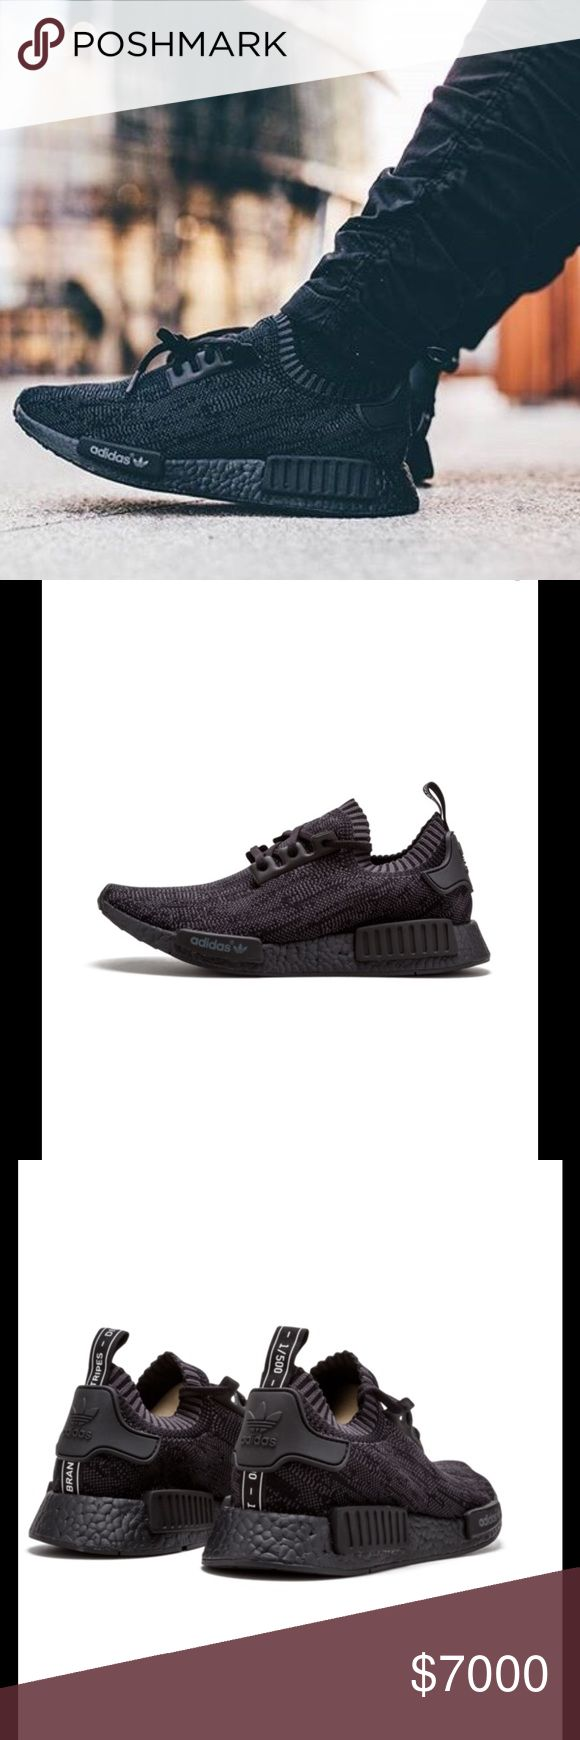 Adidas NMD R1 - Pitch Black 100% authentic, NWT, Men's sizes 6.5,